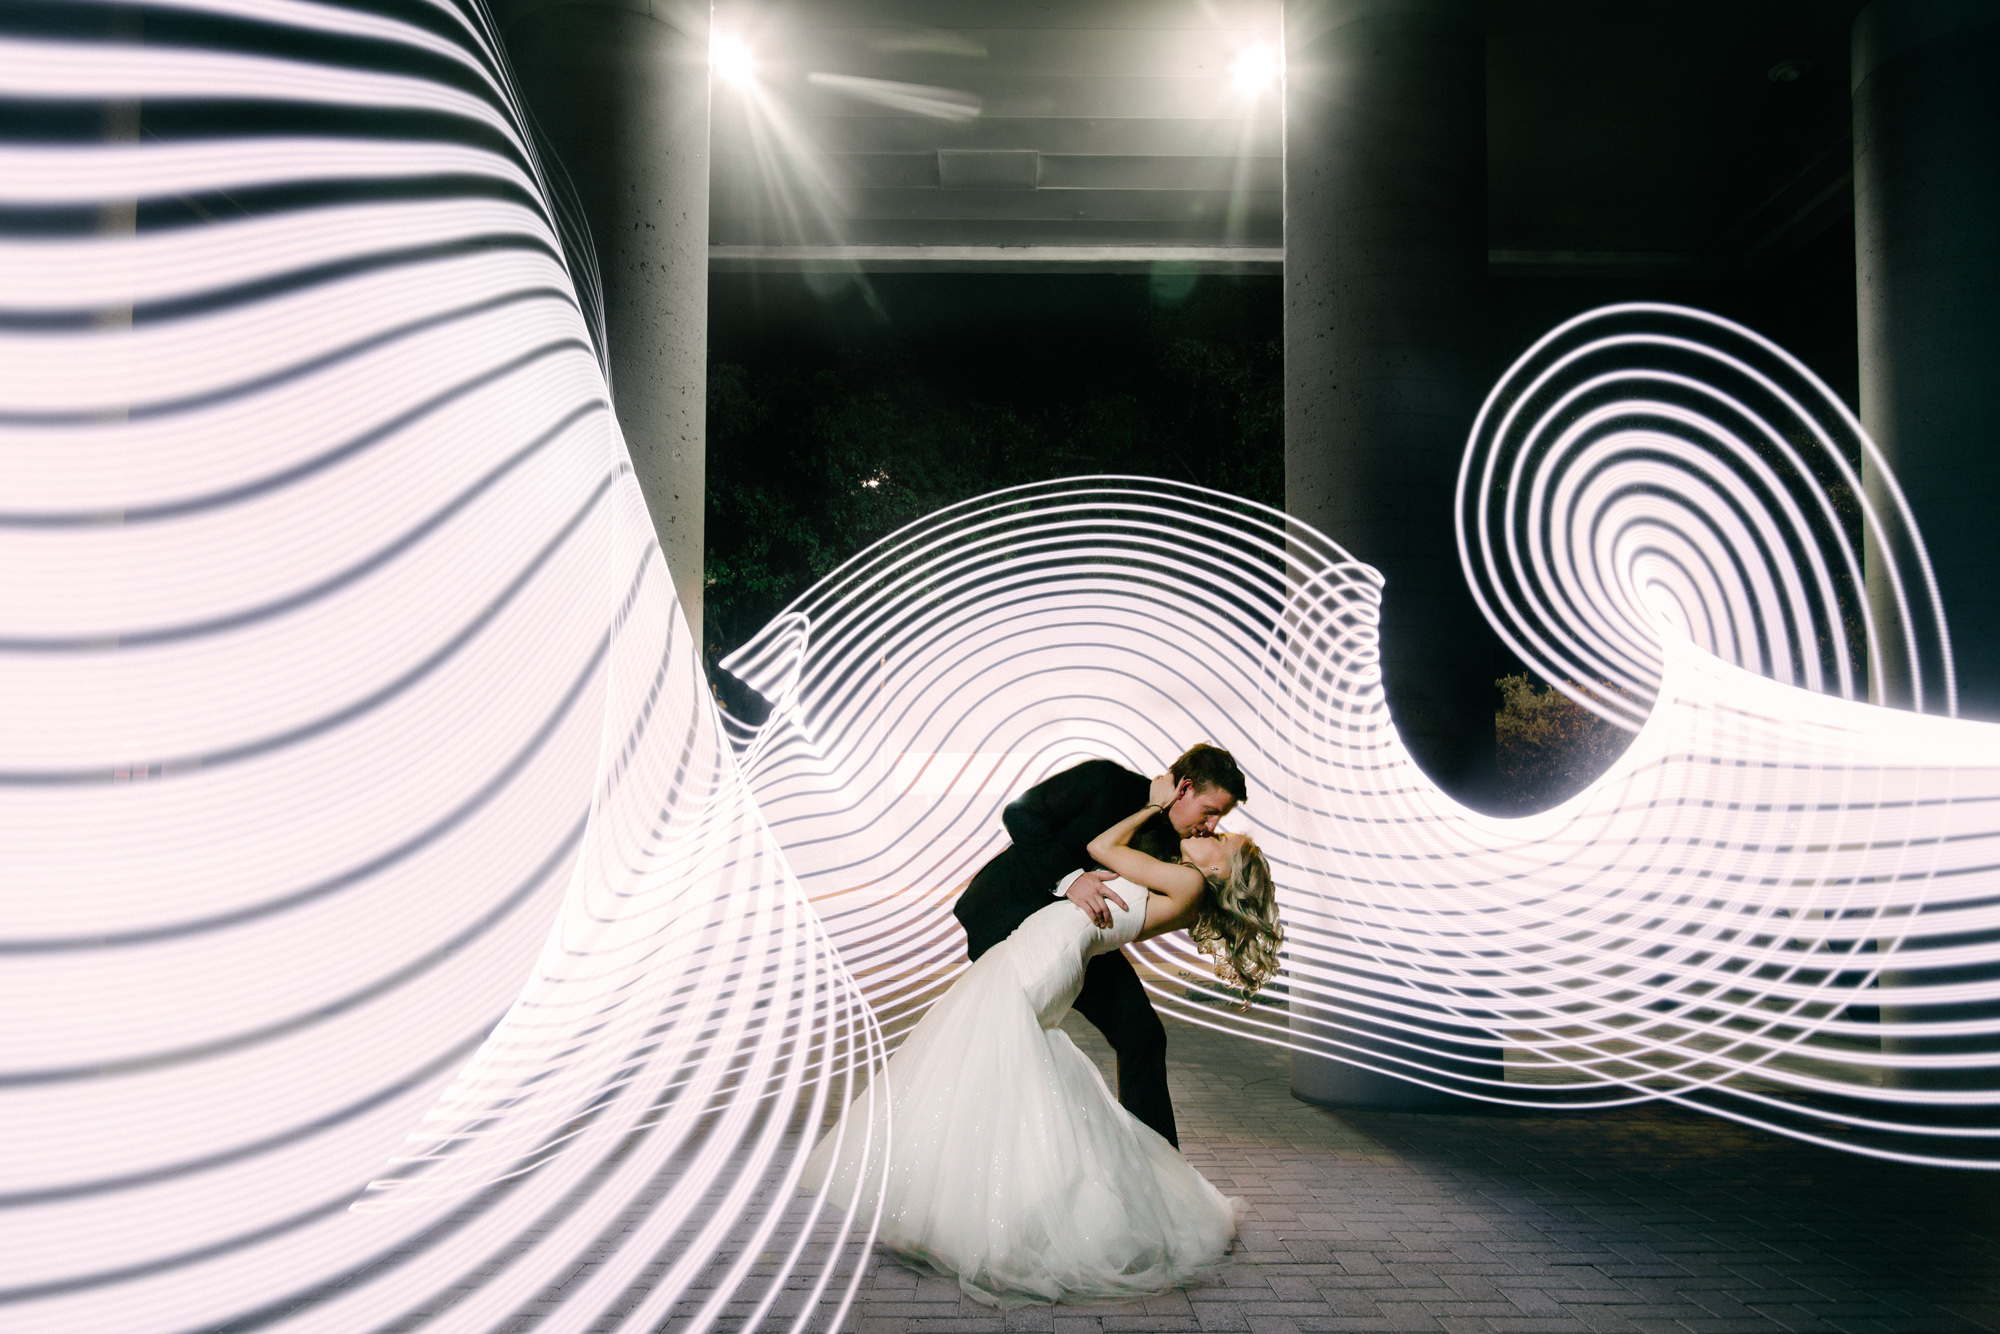 Pixelstick Bride and Groom